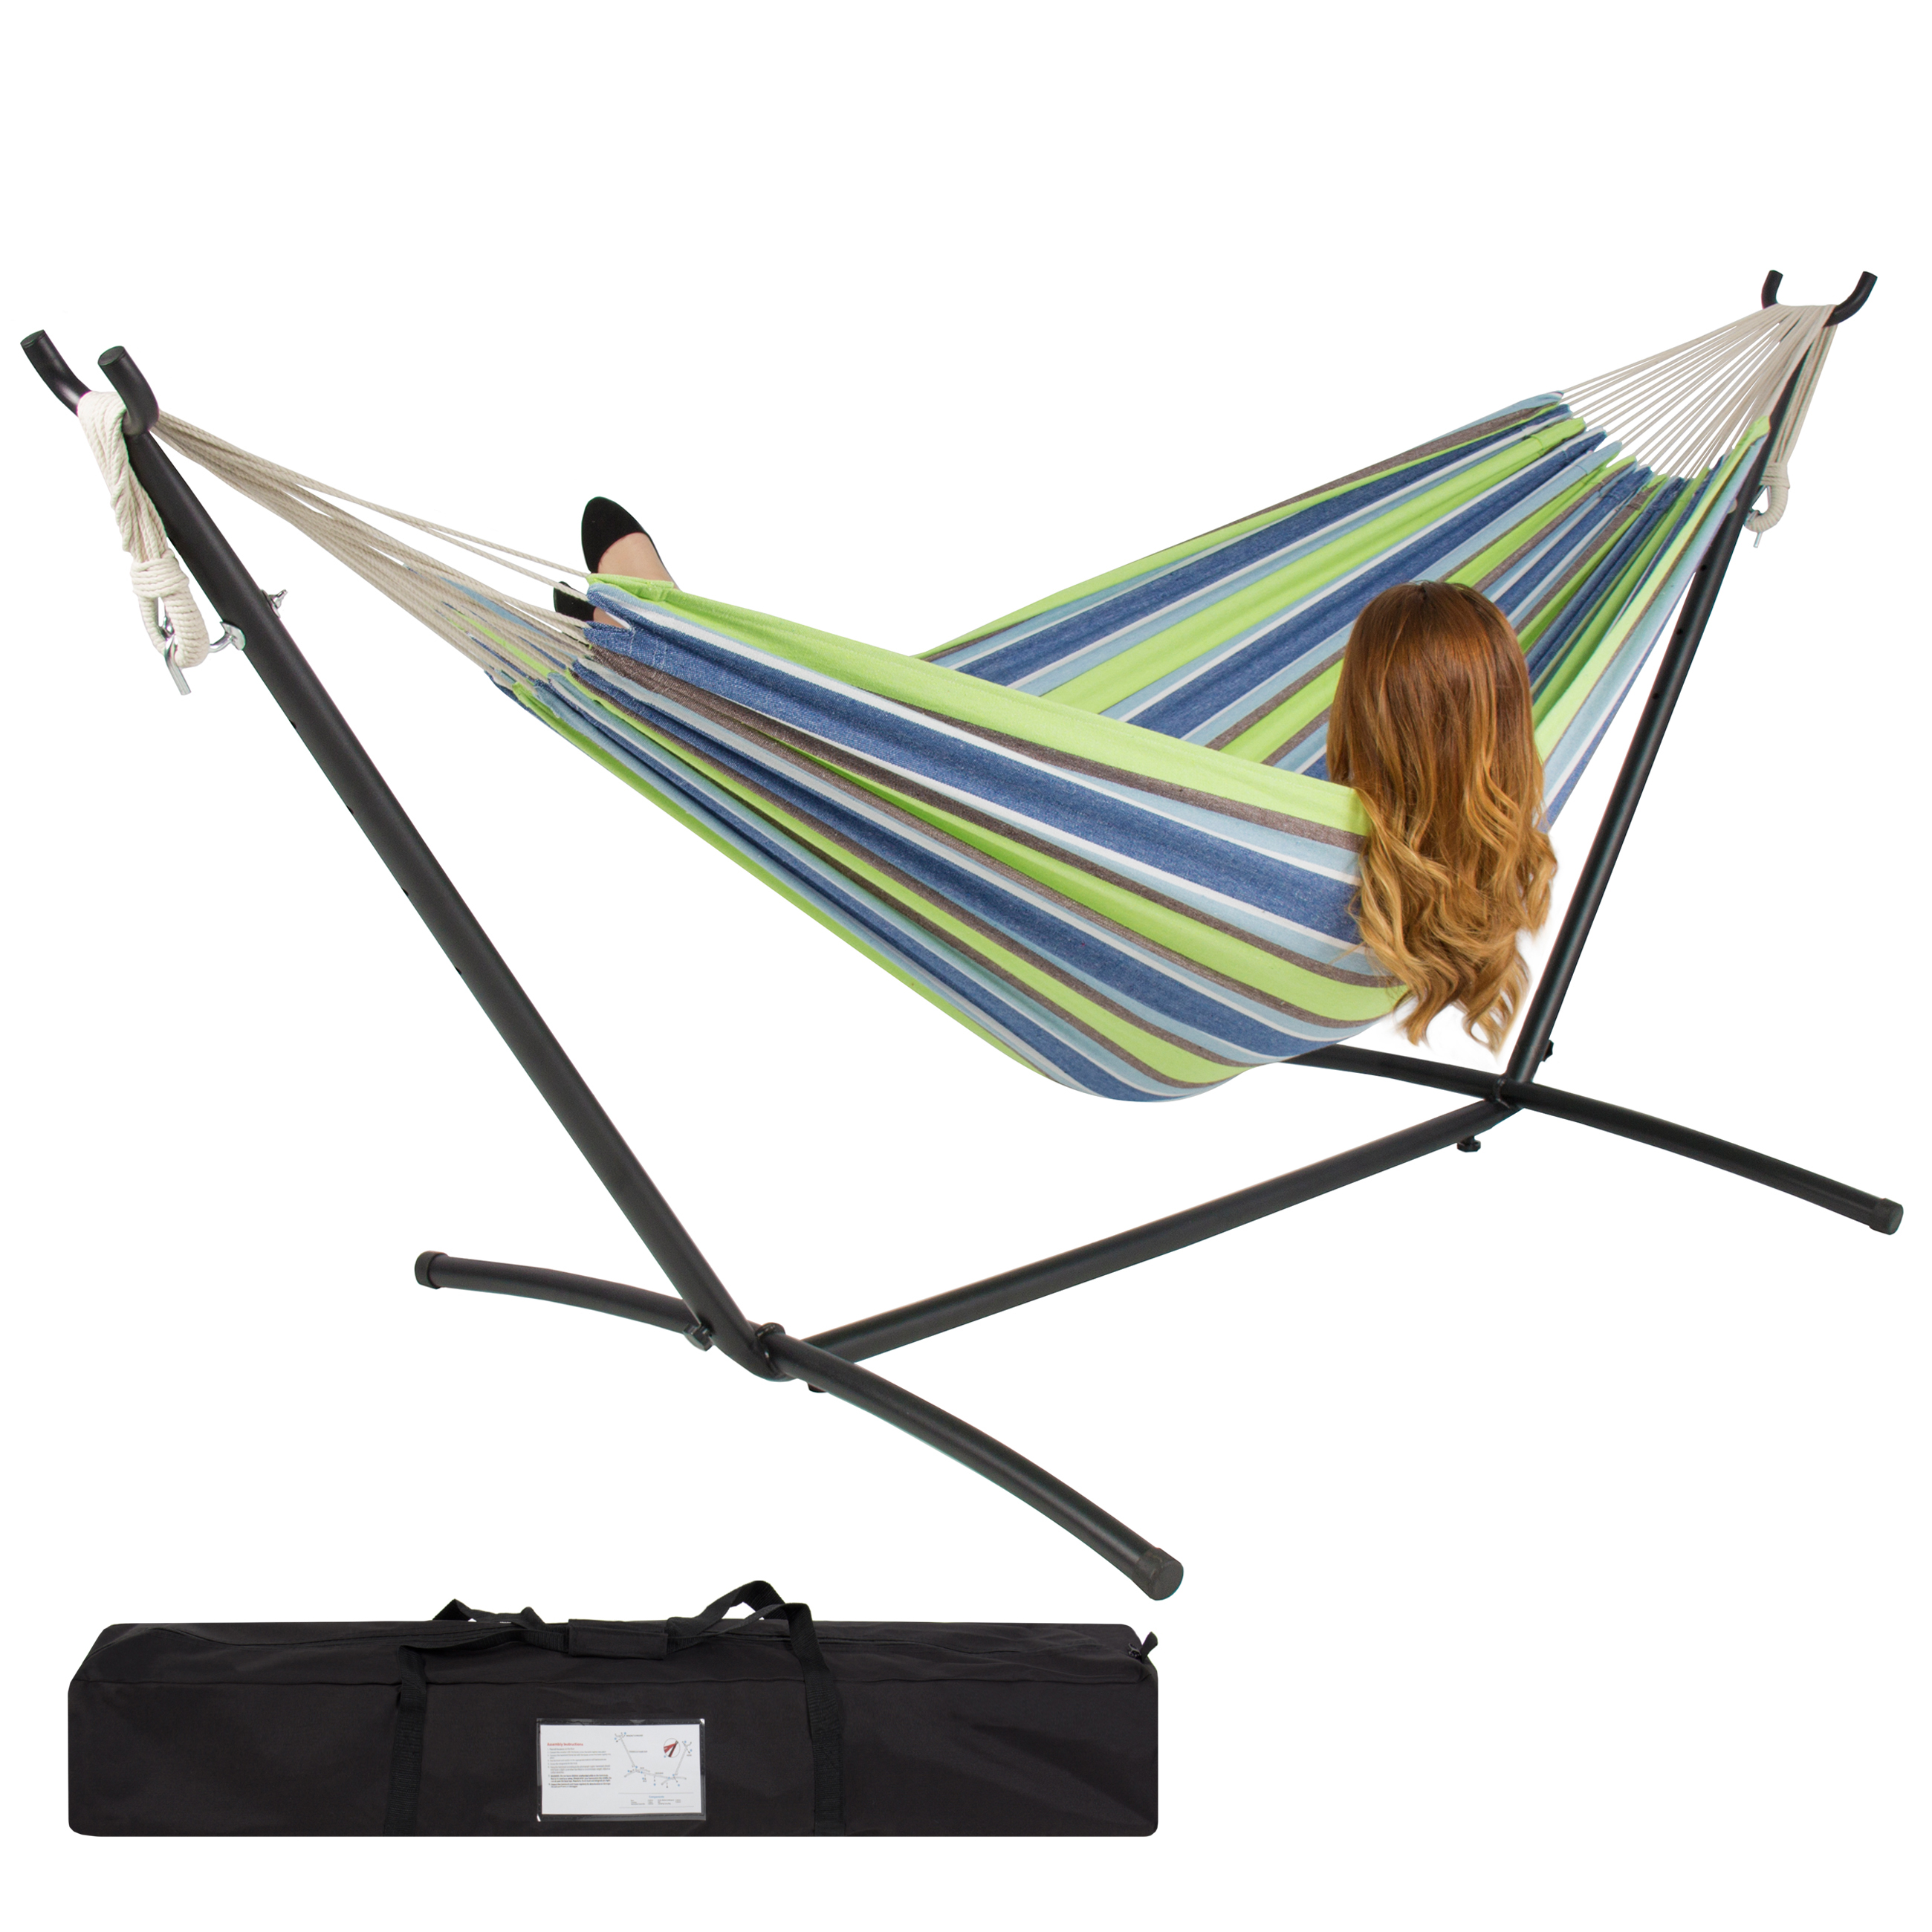 BCP-Double-Hammock-Set-w-Steel-Stand-Carrying-Case-for-Indoor-and-Outdoor